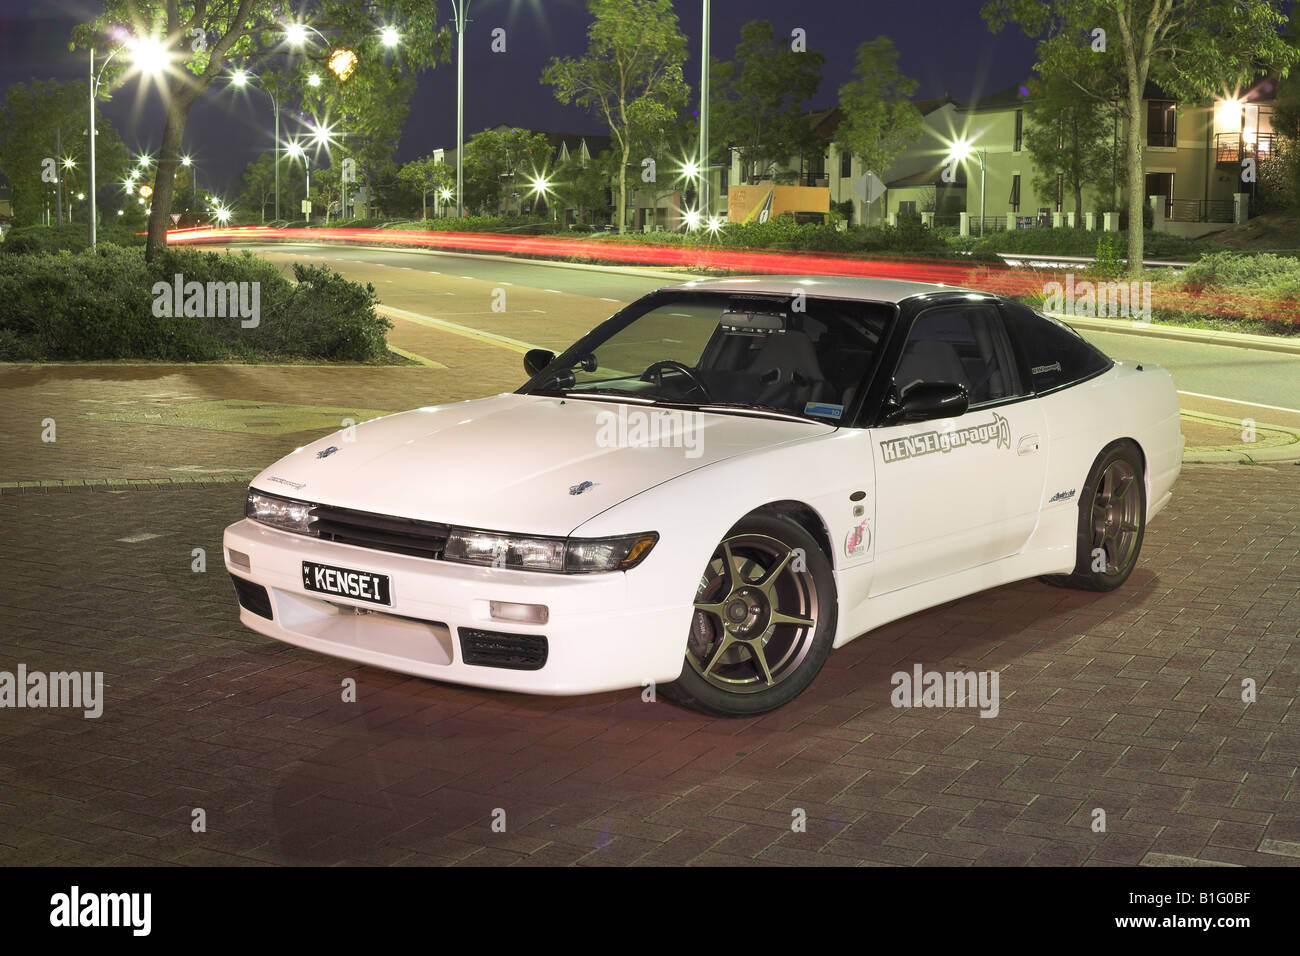 Awesome Modified Japanese Nissan S13 180SX Silvia Sports Car   Stock Image